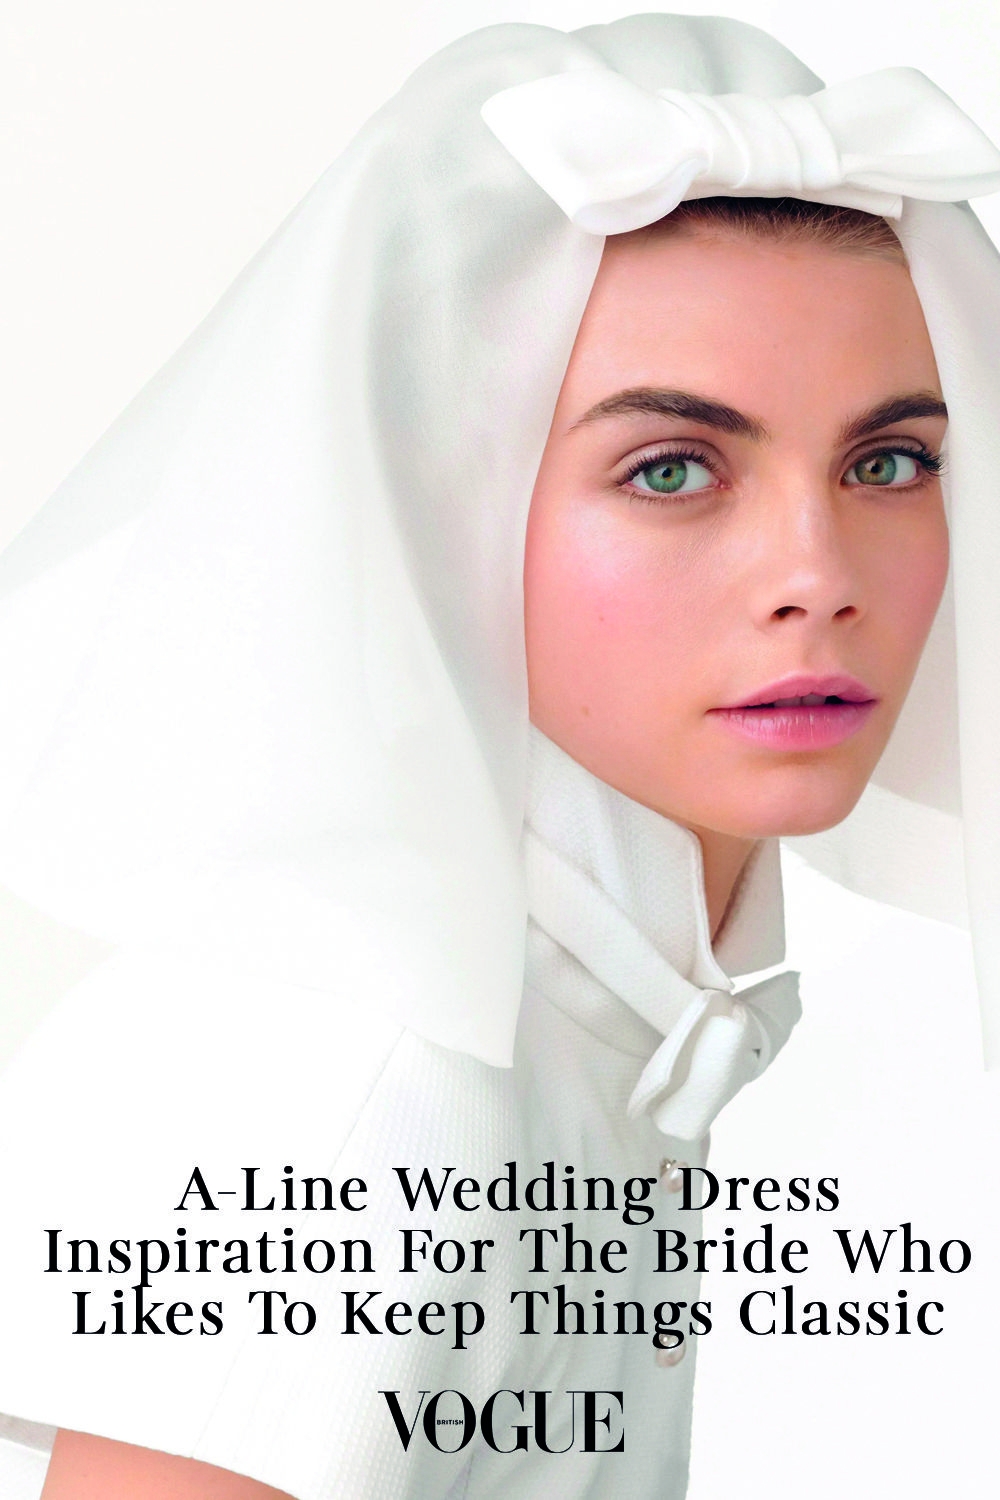 A-Line Wedding Dress Inspiration For The Bride Who Likes To Keep Things Classic